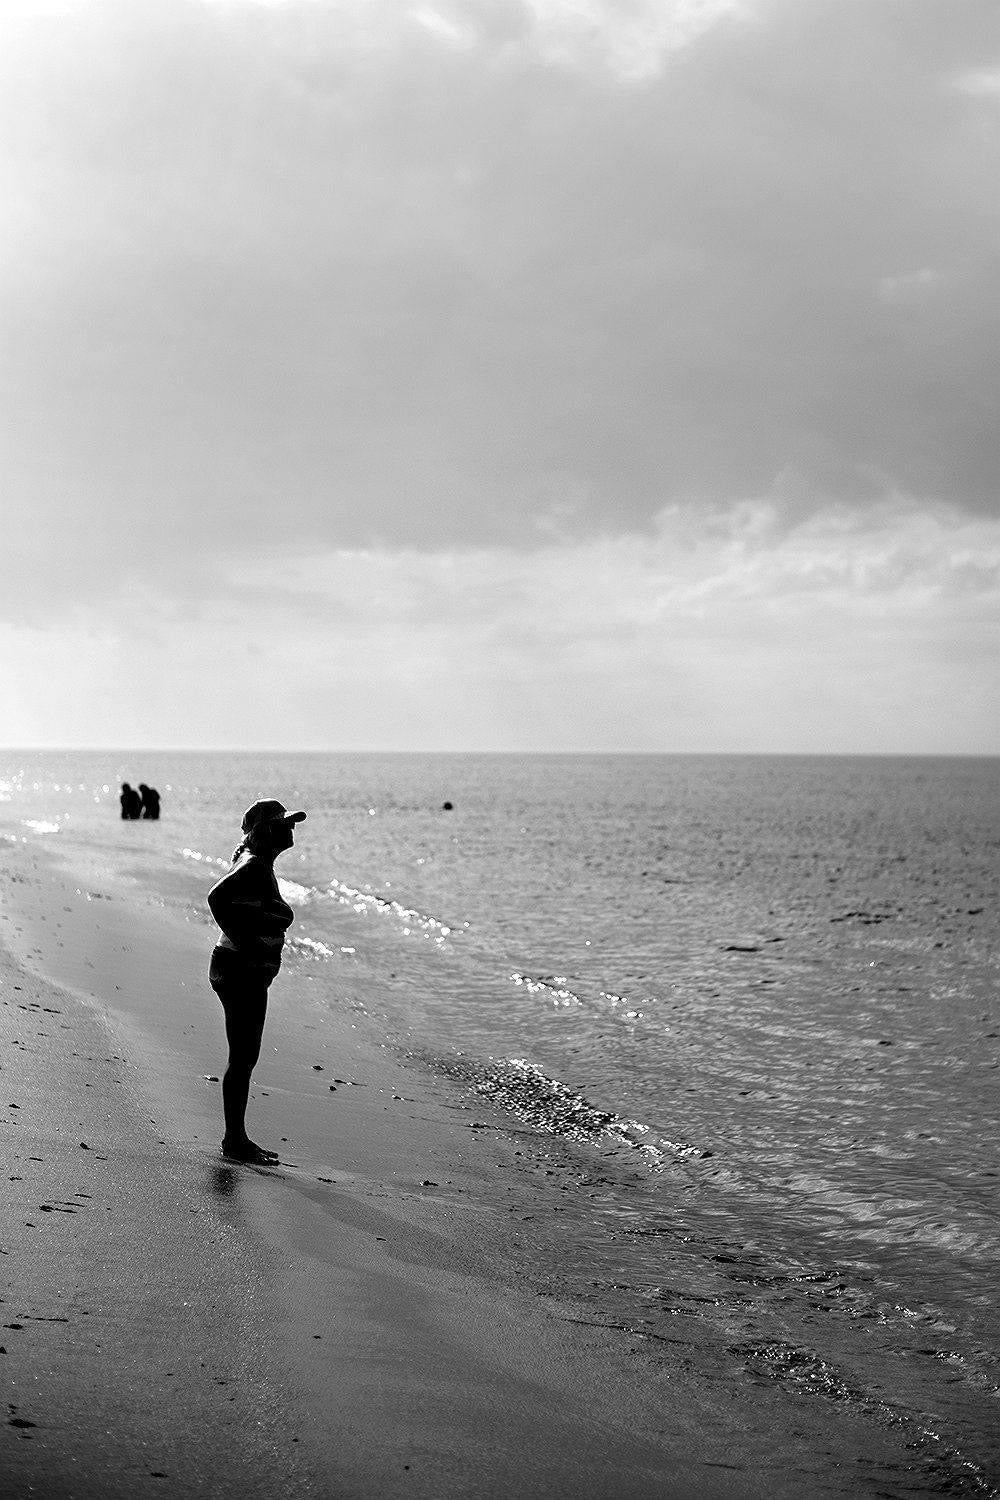 Woman at Beach, Cape Cod, Massachussets